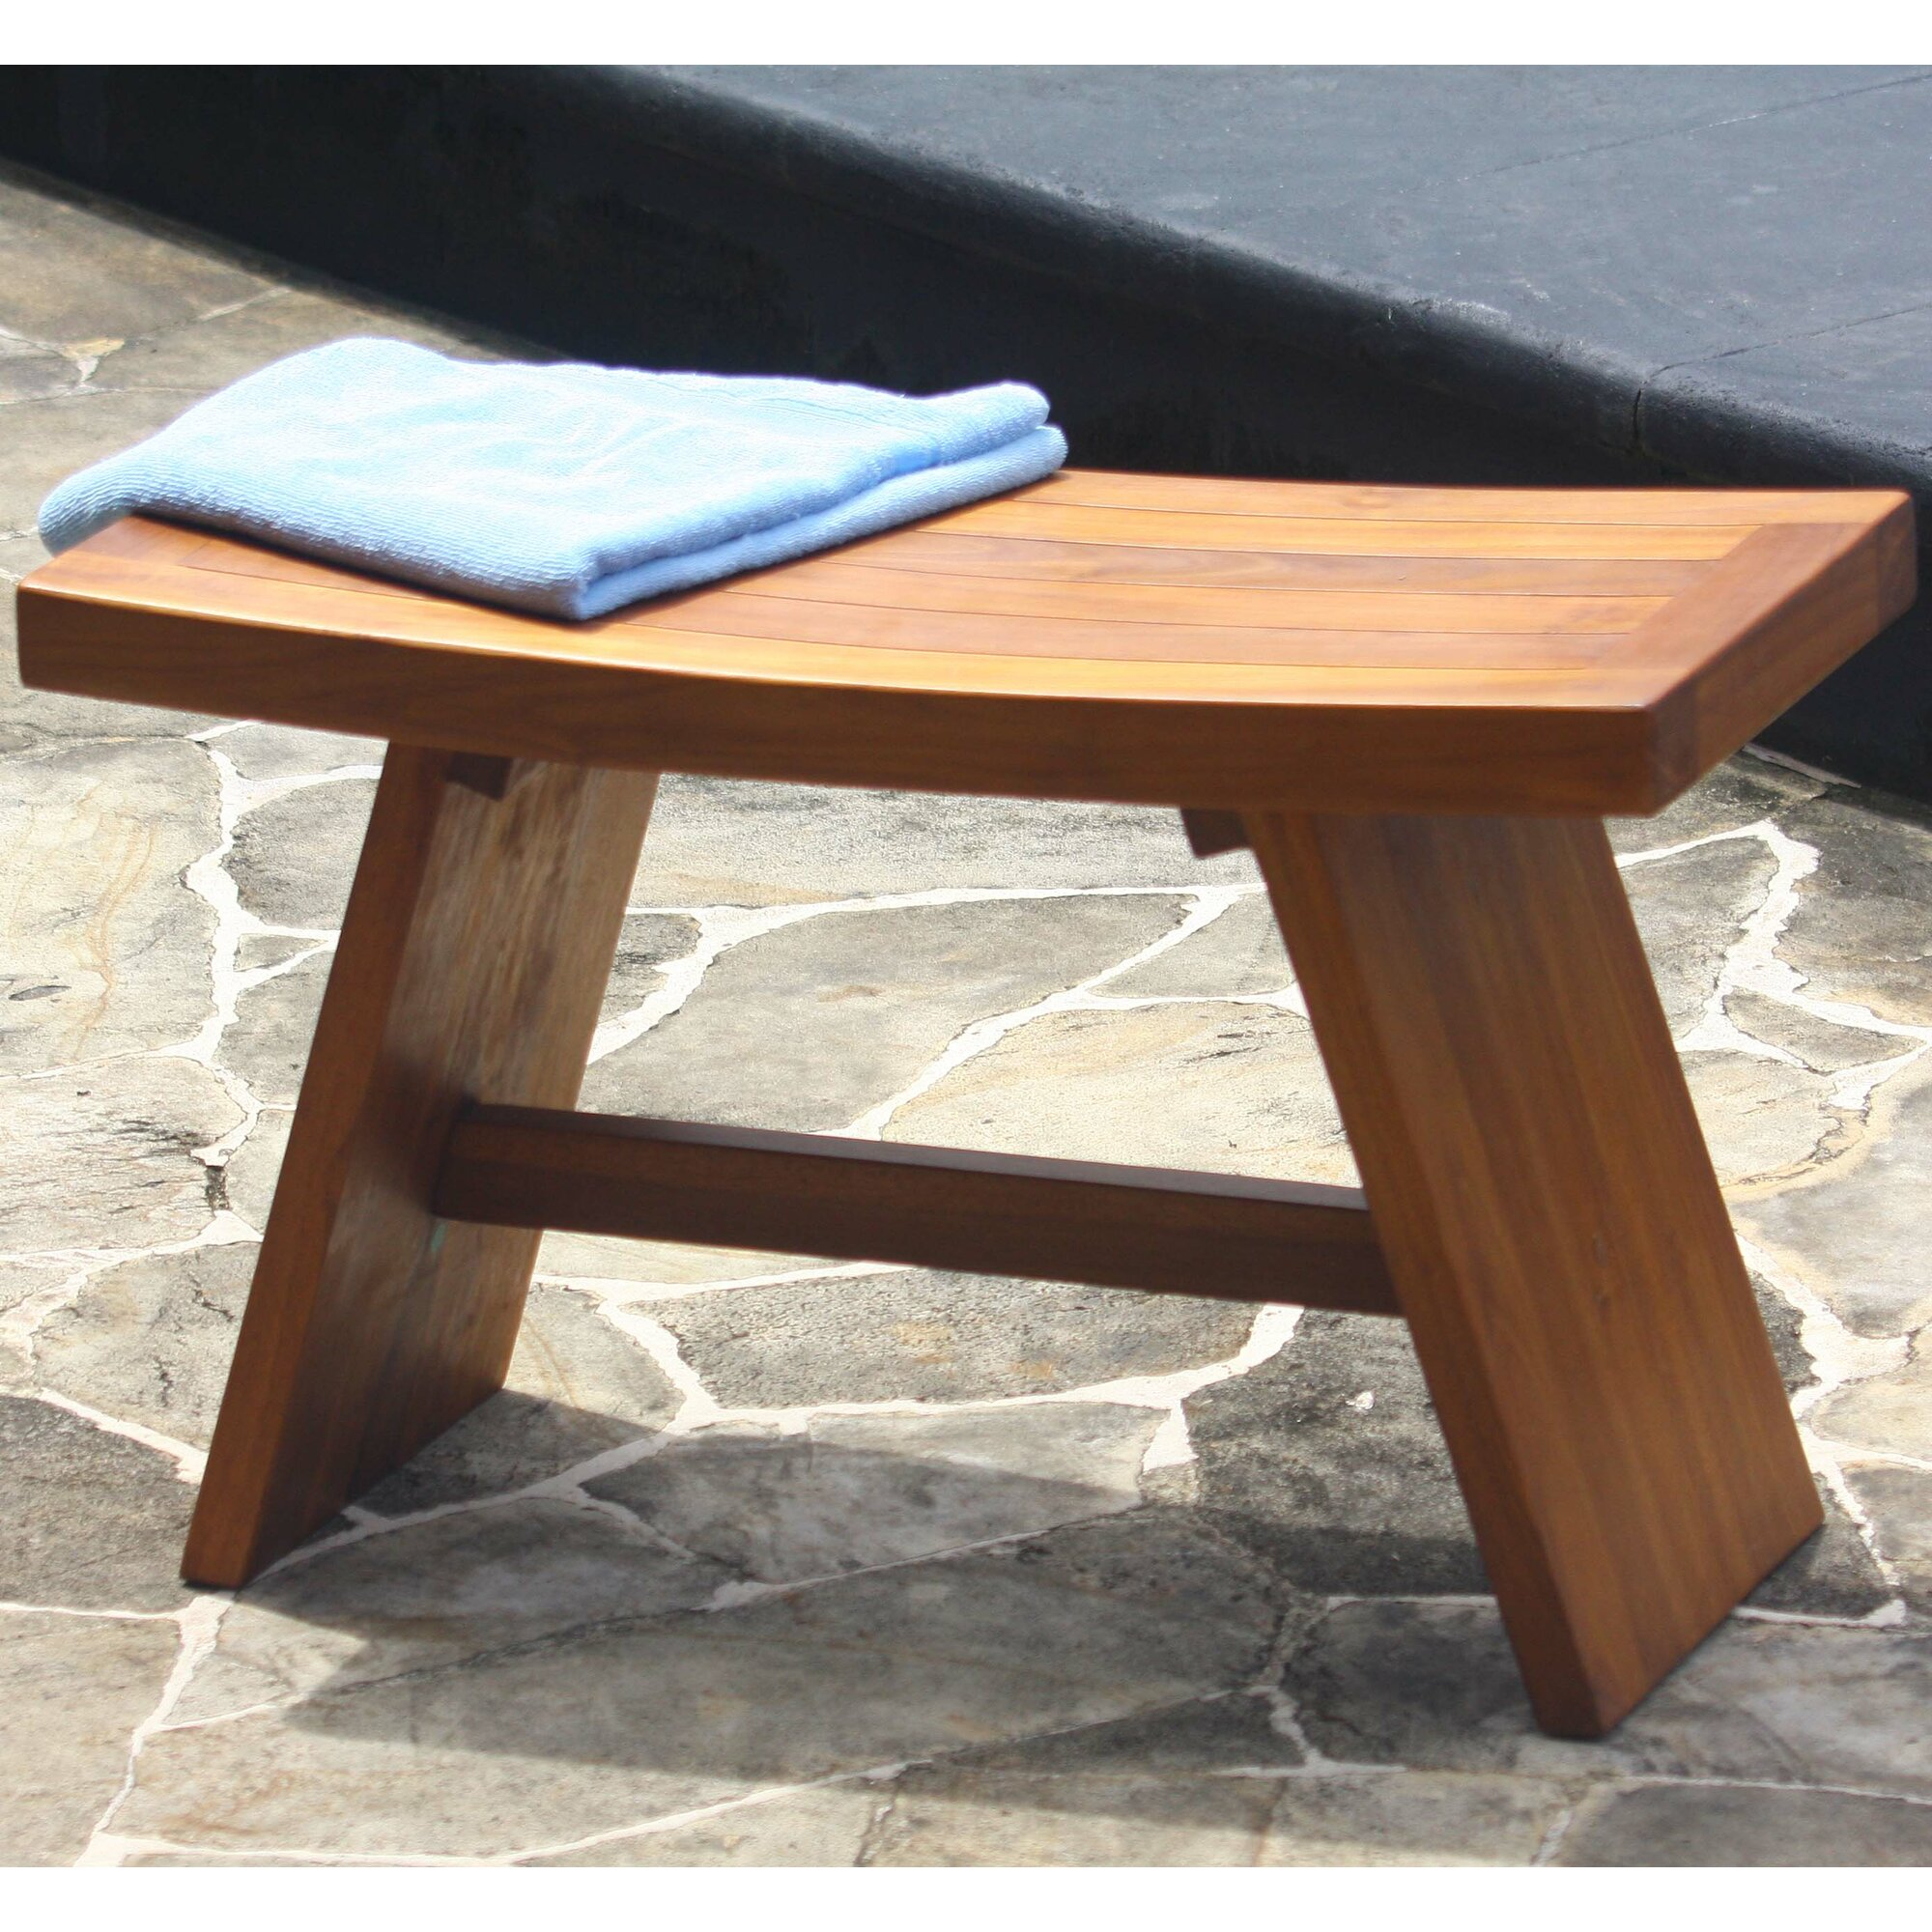 Teak shower chair with back - Asiana Teak Shower Seat